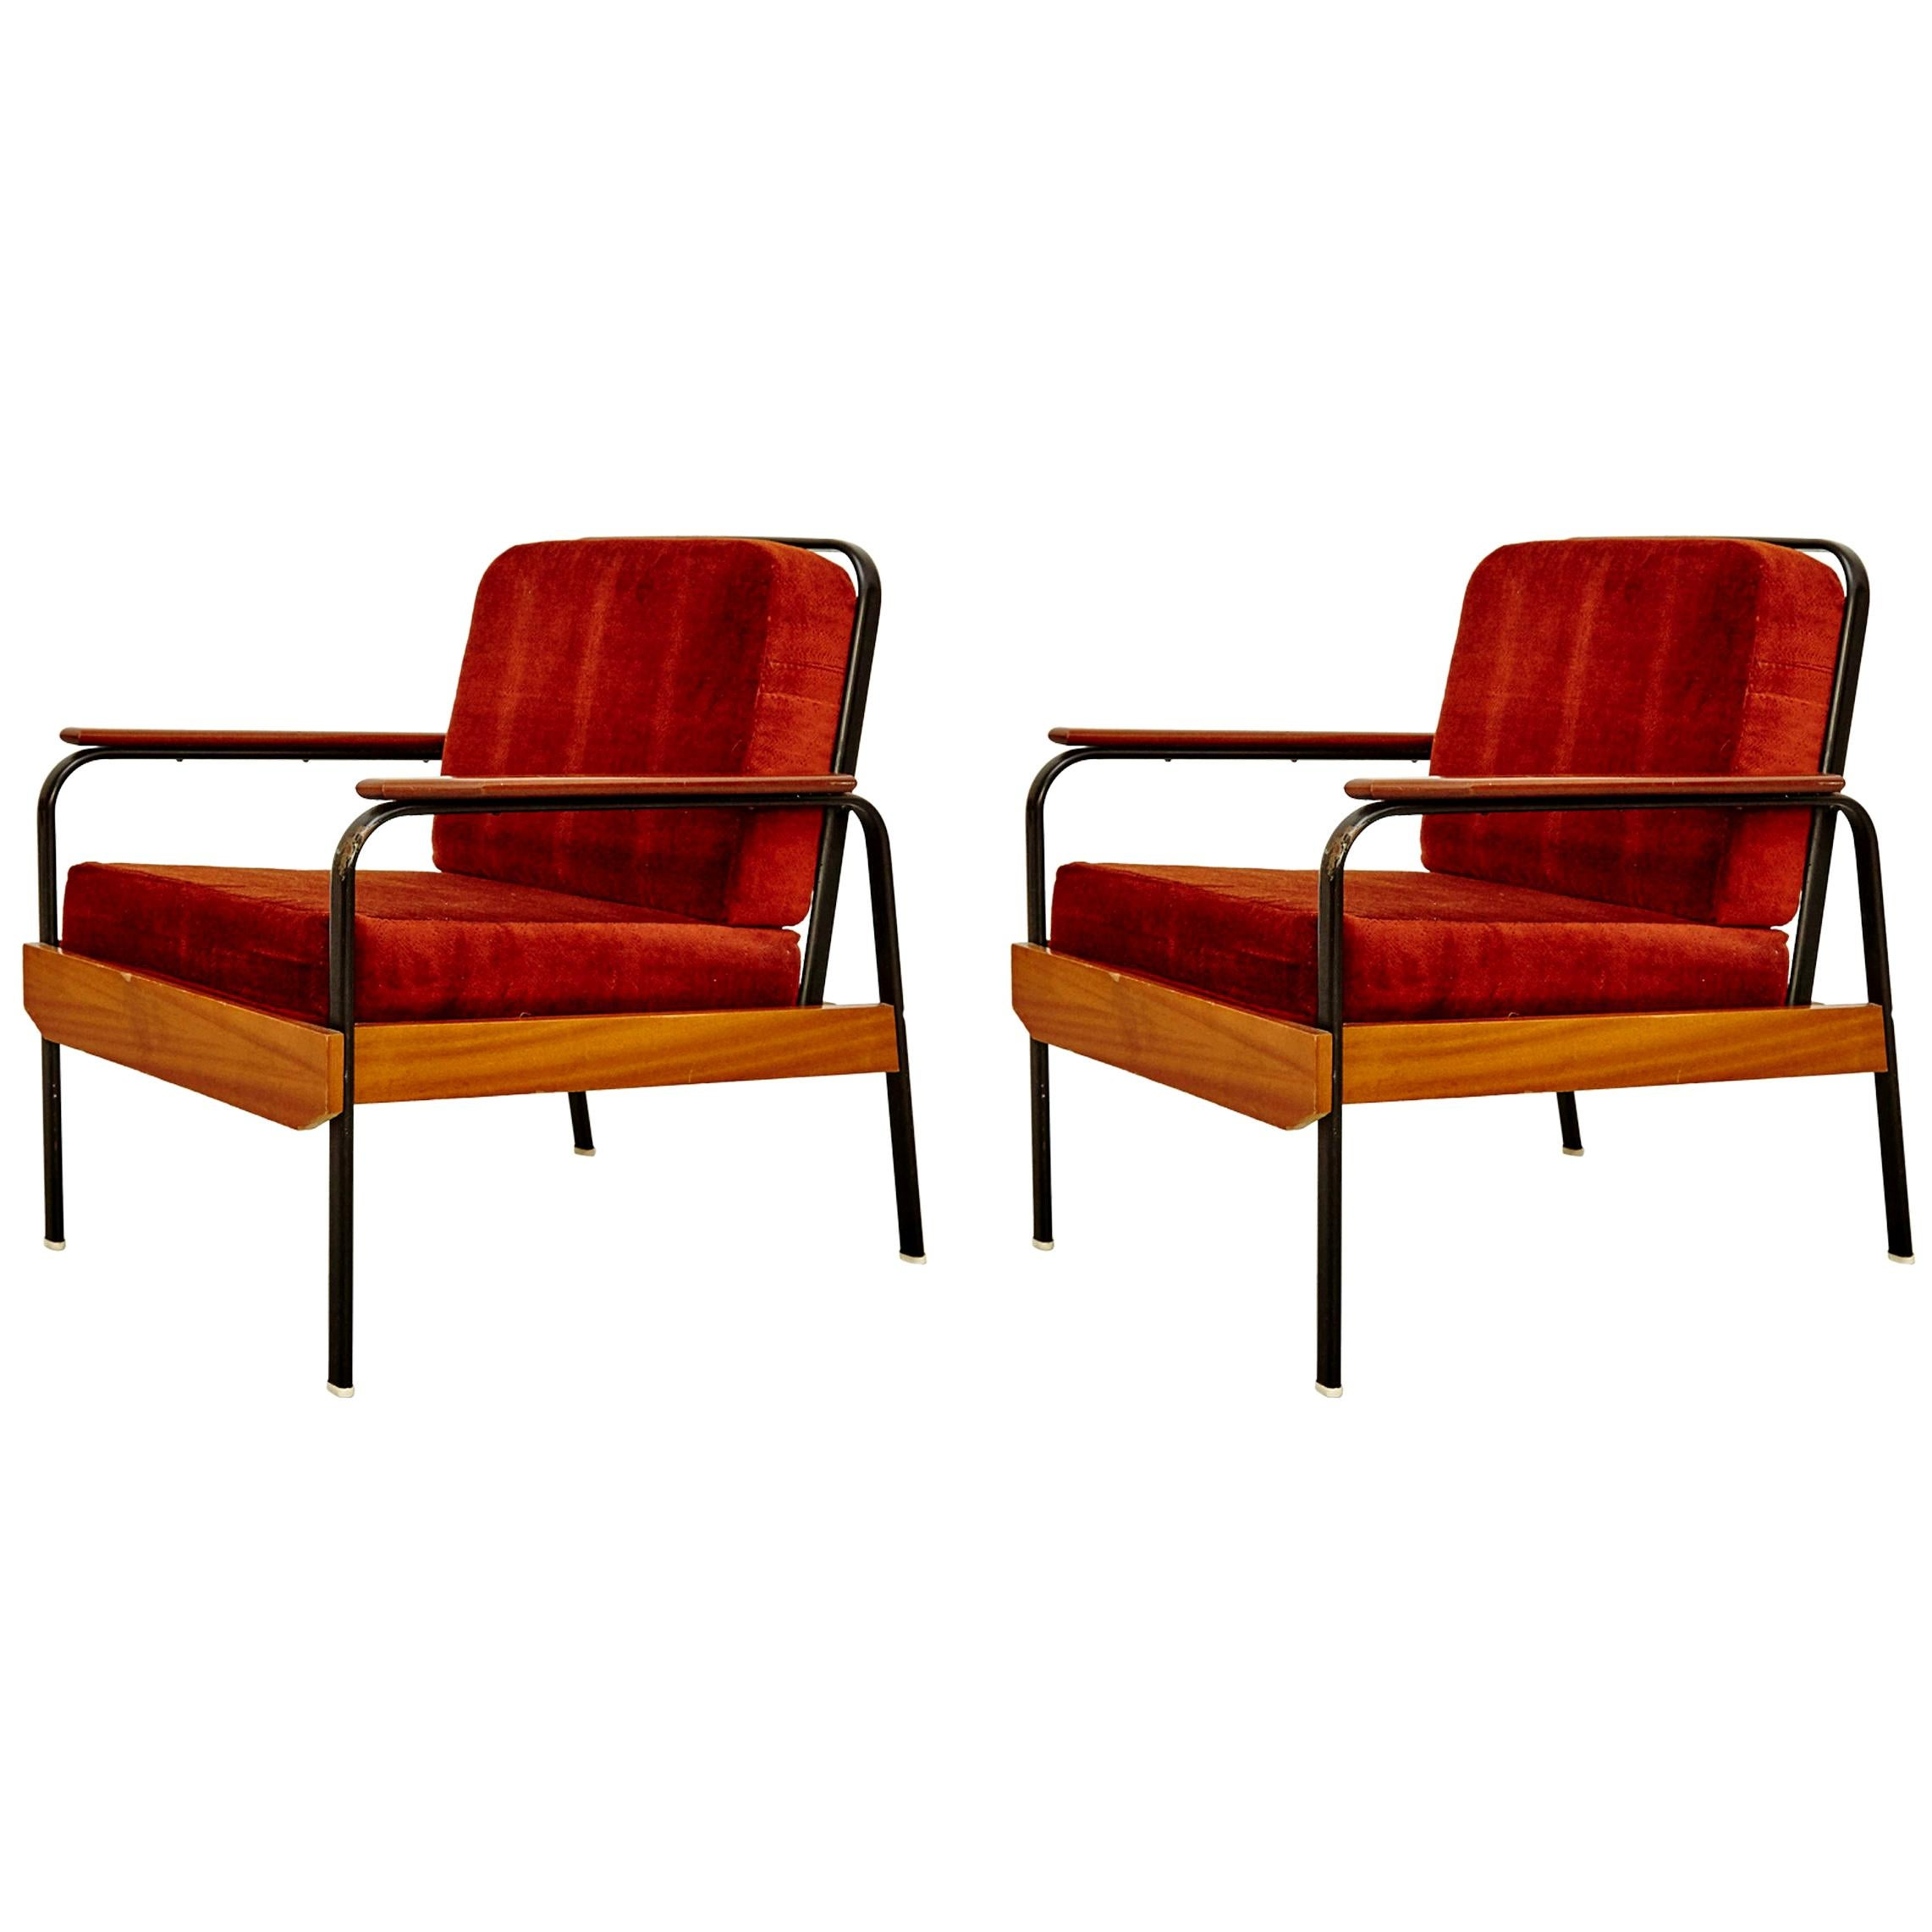 Pair of Mid-Century Modern French Easy Chairs after Jean Prouvé, circa 1950